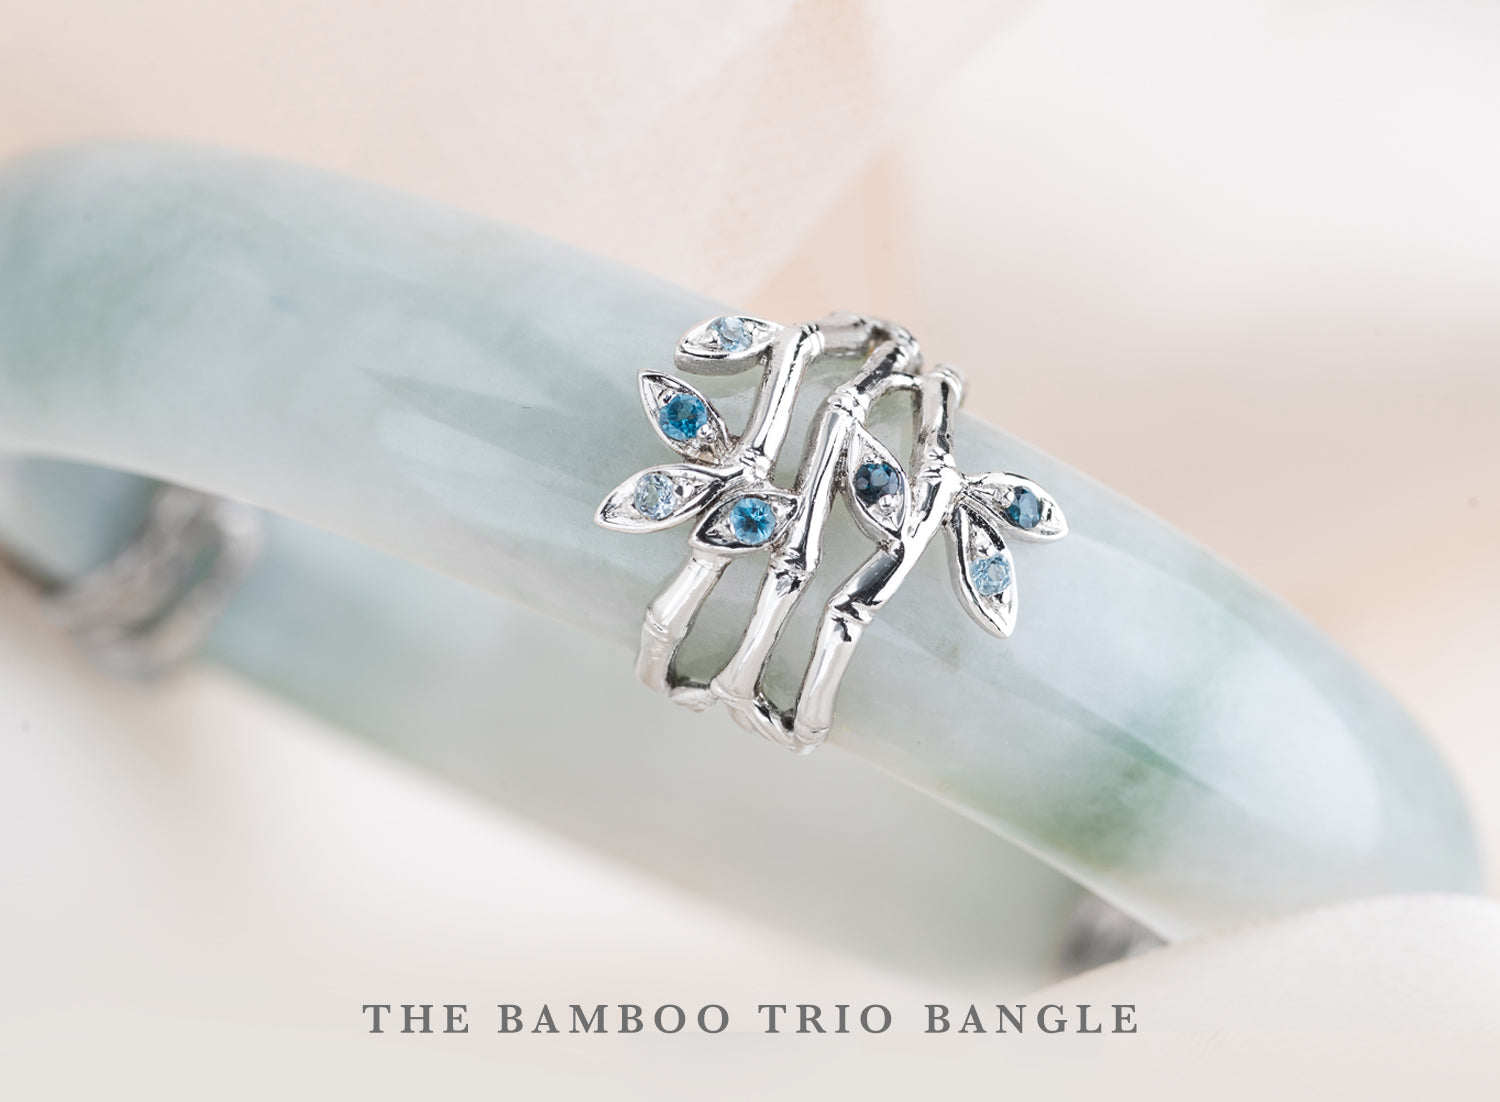 Bamboo Trio Bangle